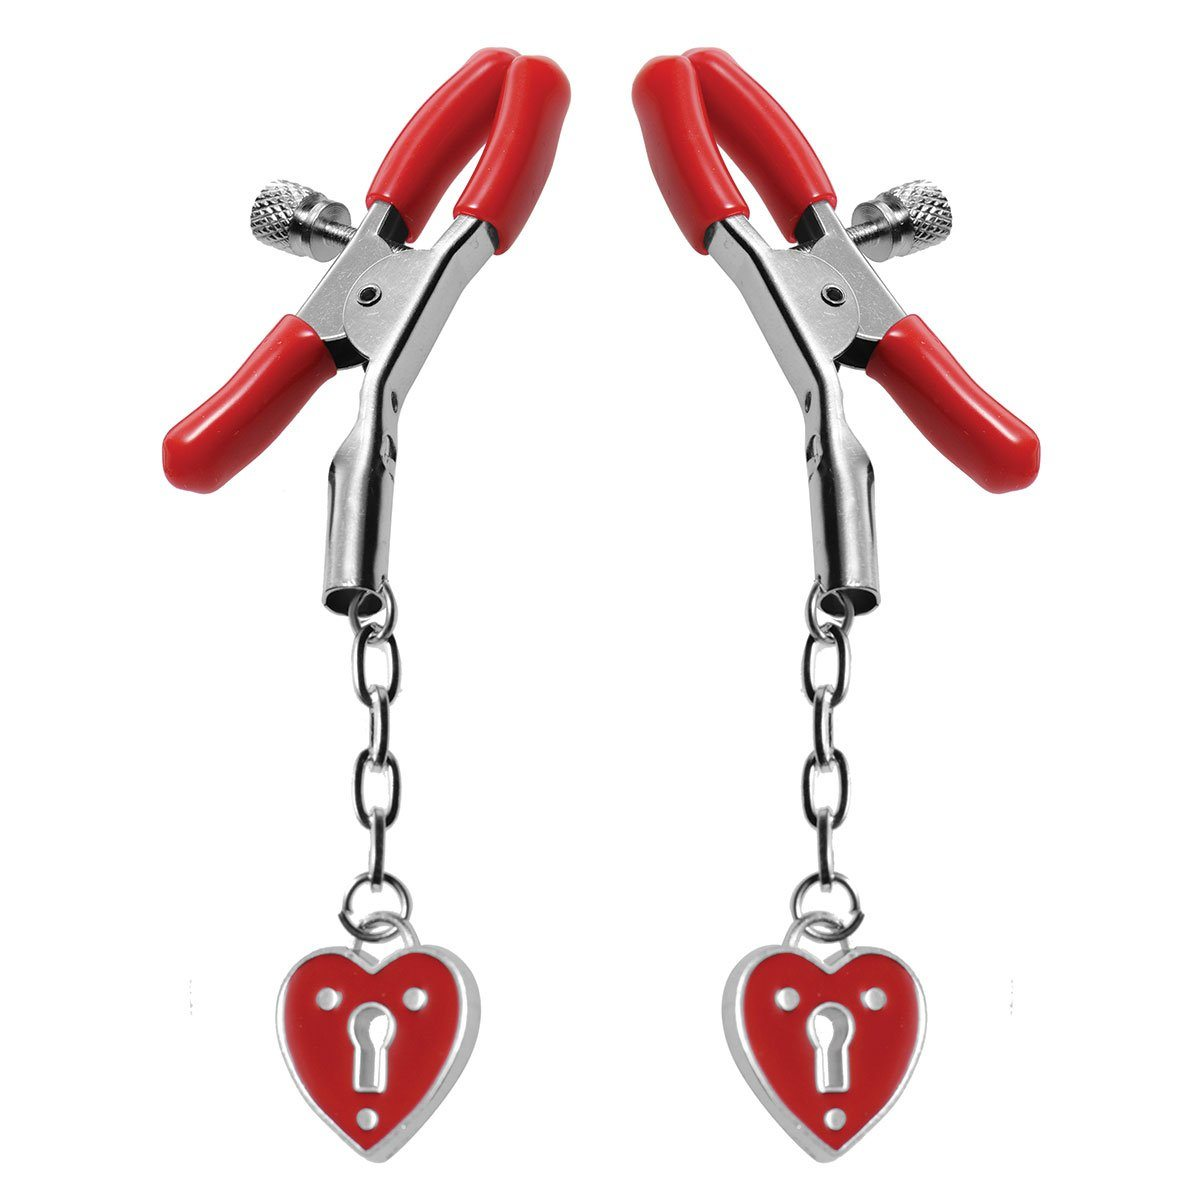 Xr Brands Heart Padlock Nipple Clamps 1  - Beyond Delights